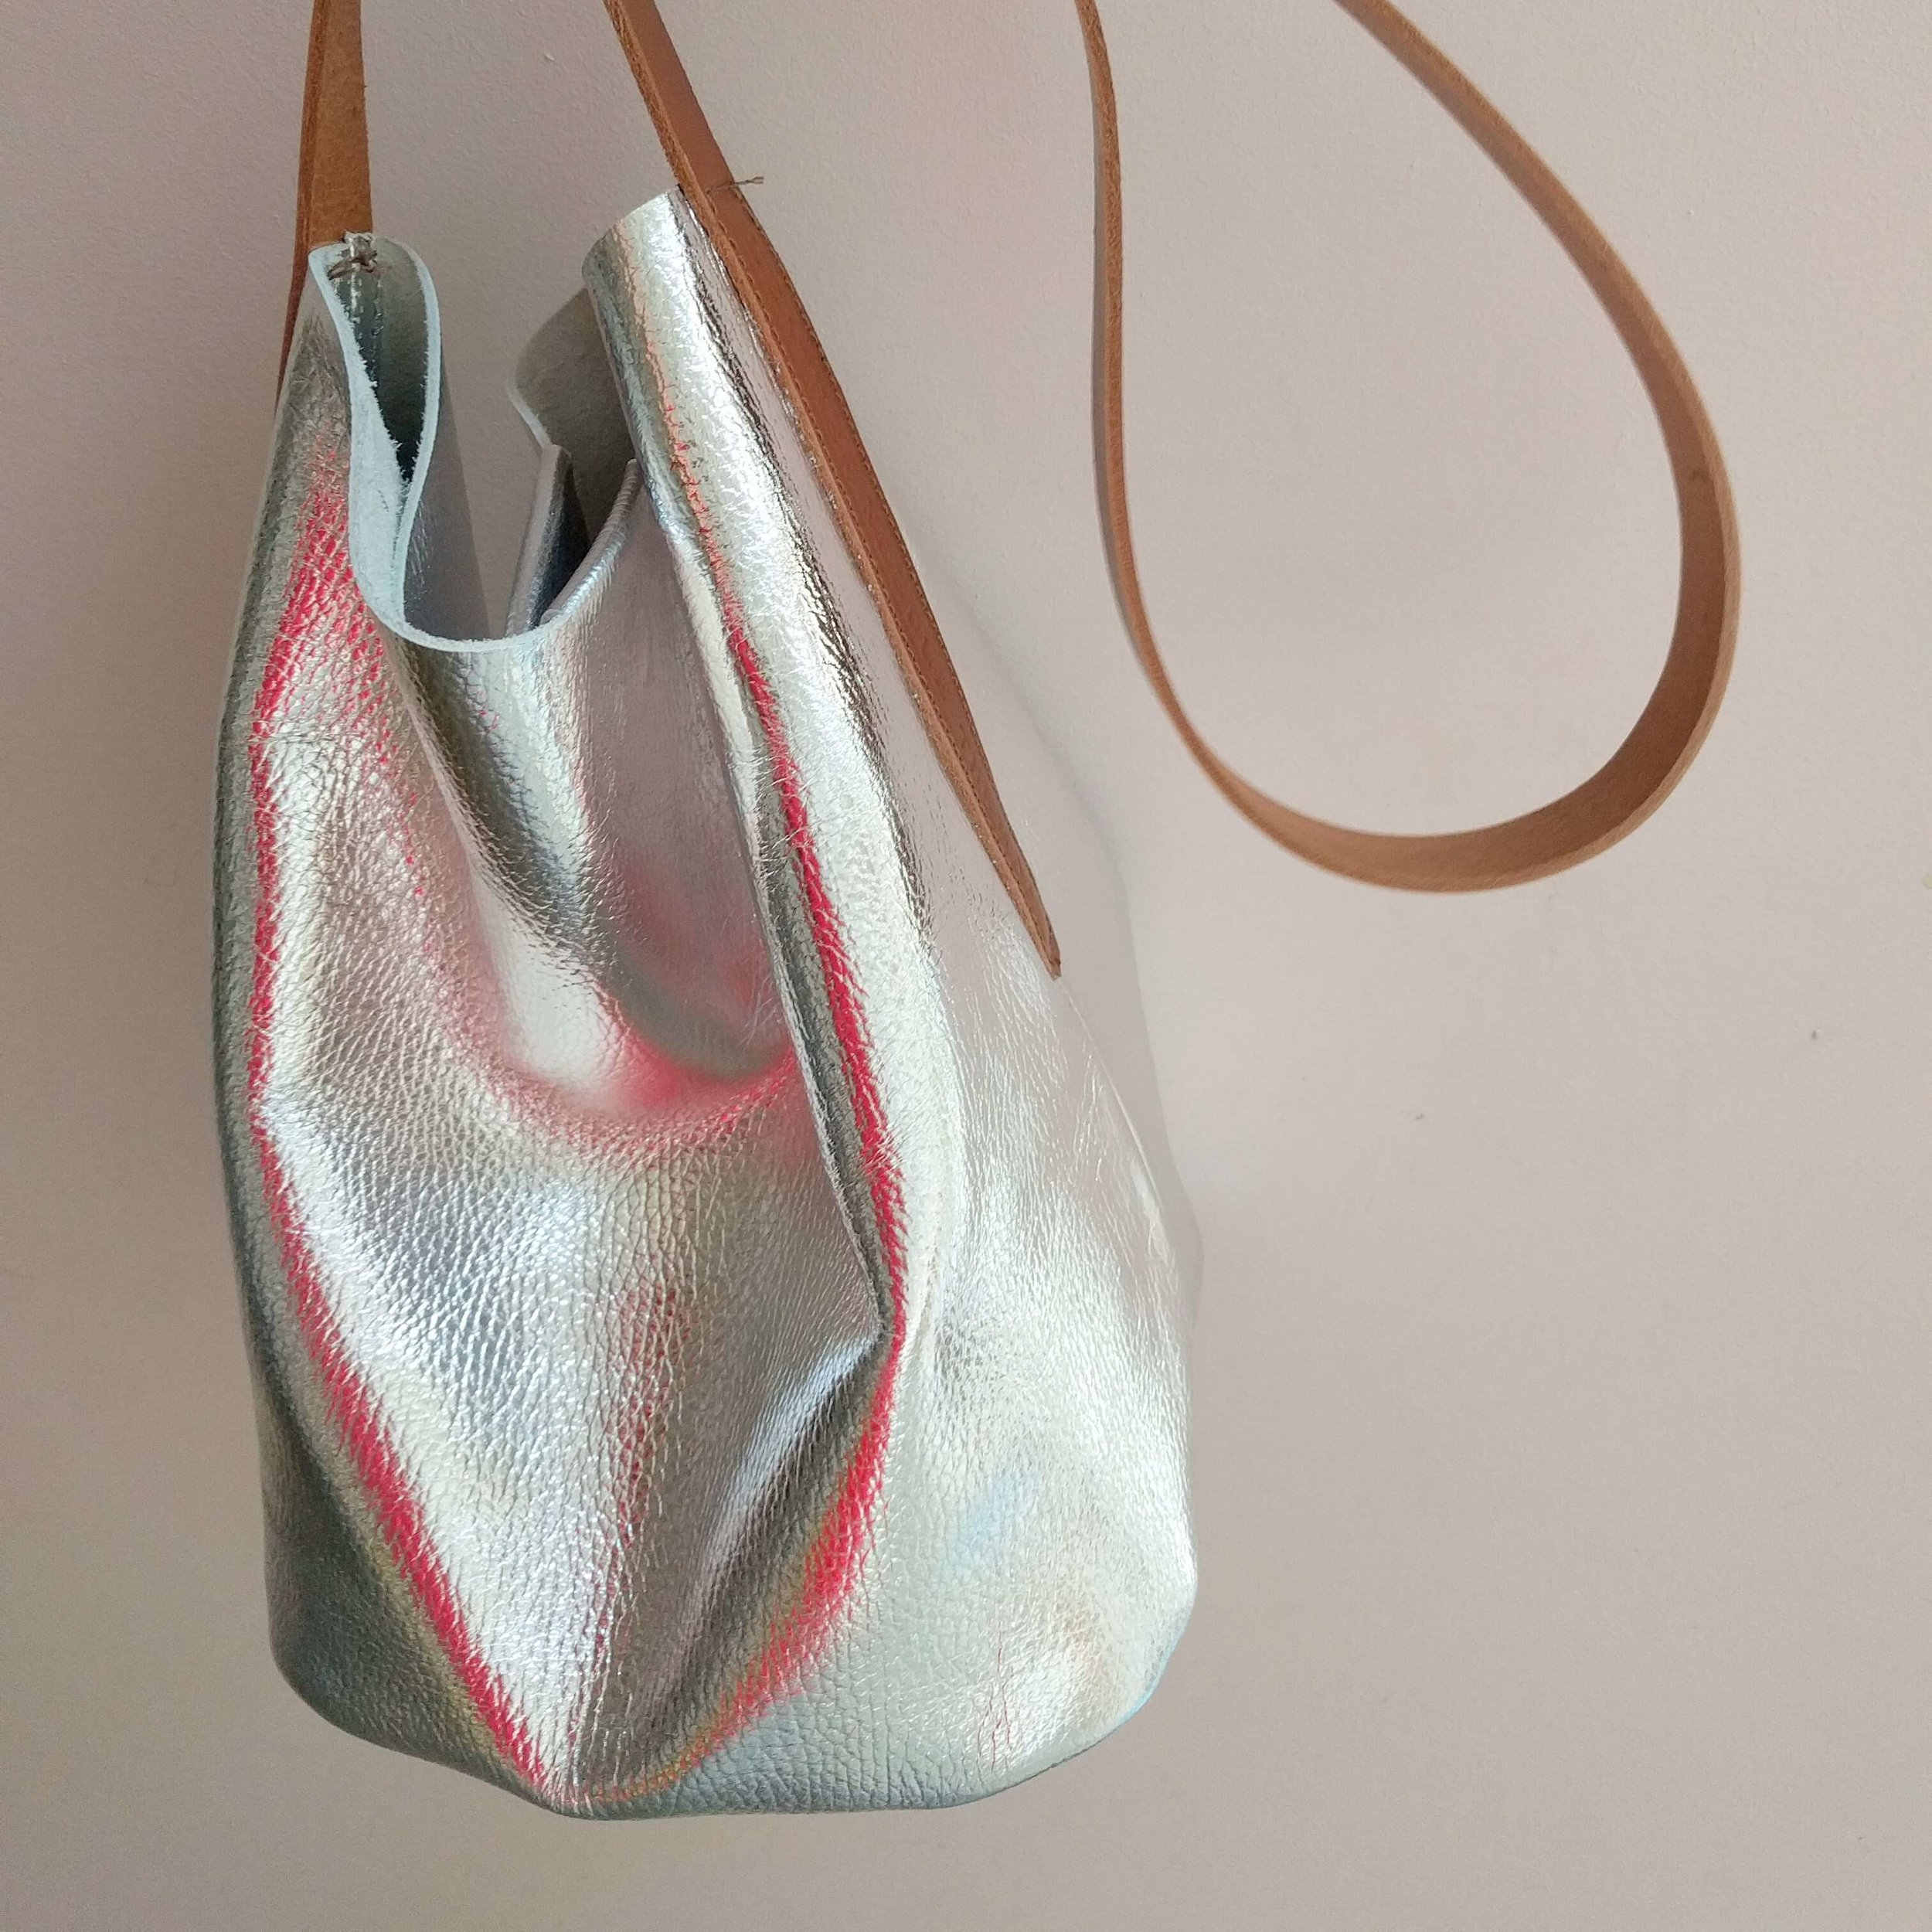 silver-leather-bucket-bag-tan-strap.jpg